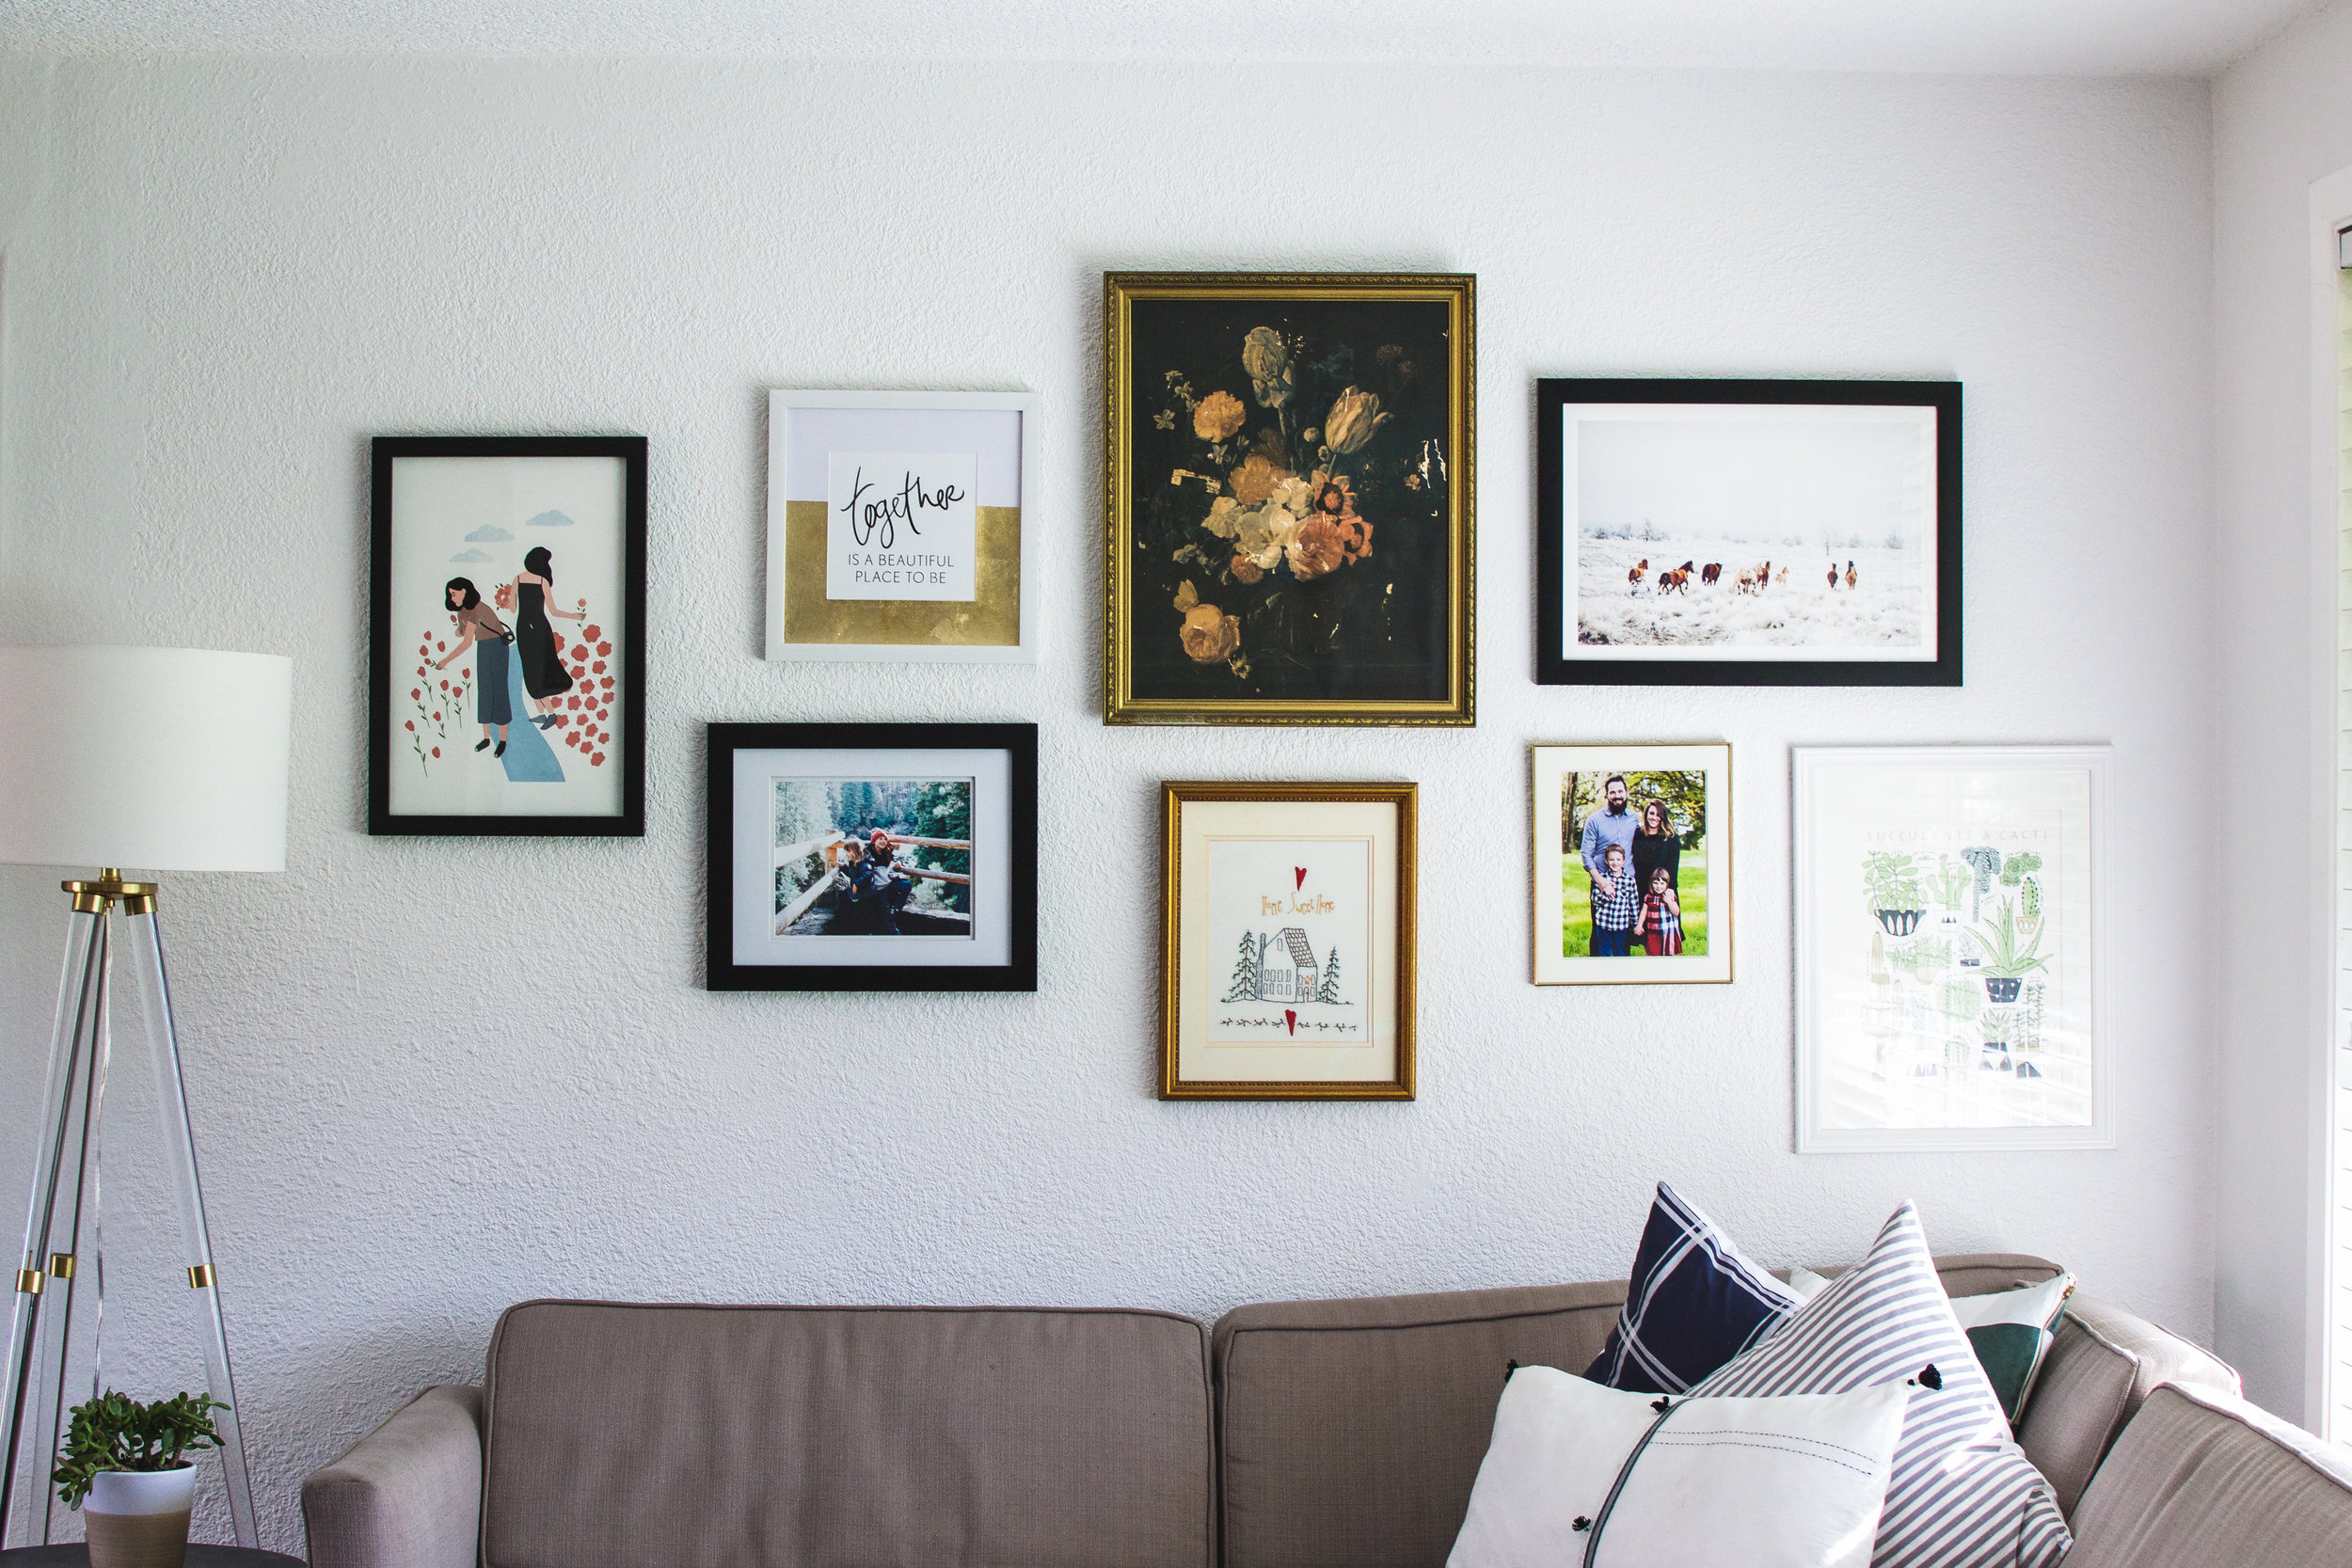 I love gallery walls but with our low ceilings I had to really pare down my collection. I'm really enjoying how this all turned out and the sweet pieces I was able to use!